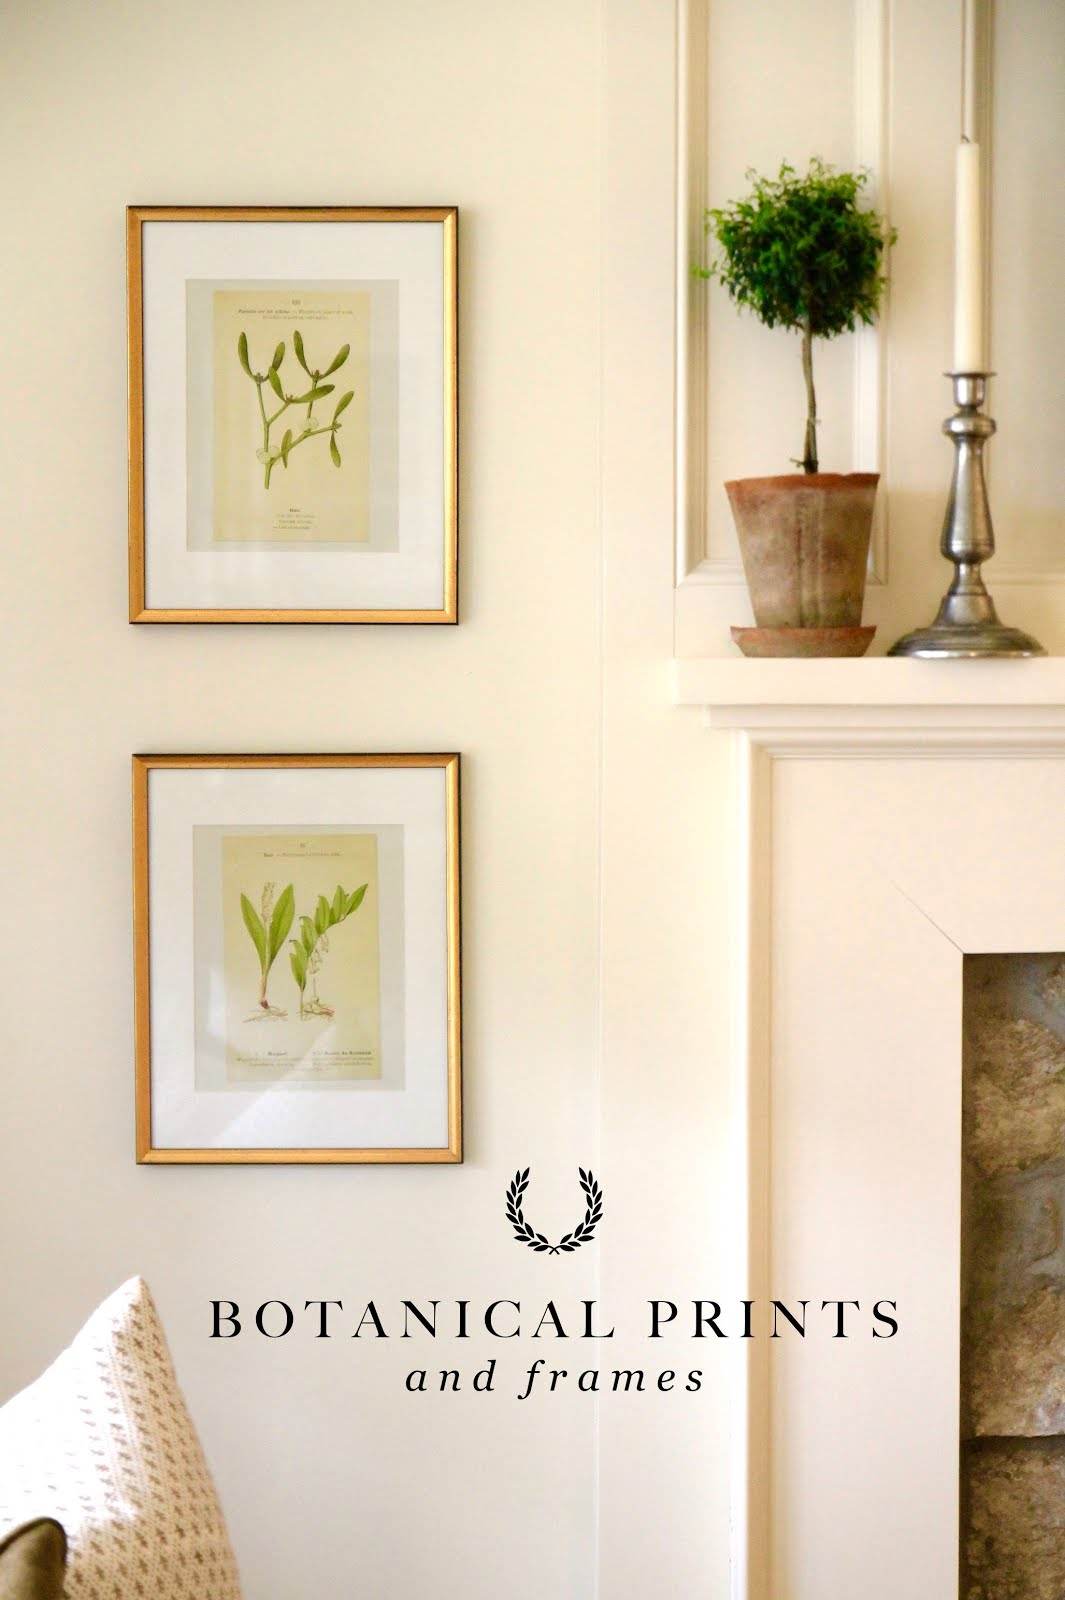 Botanical Prints & Frames